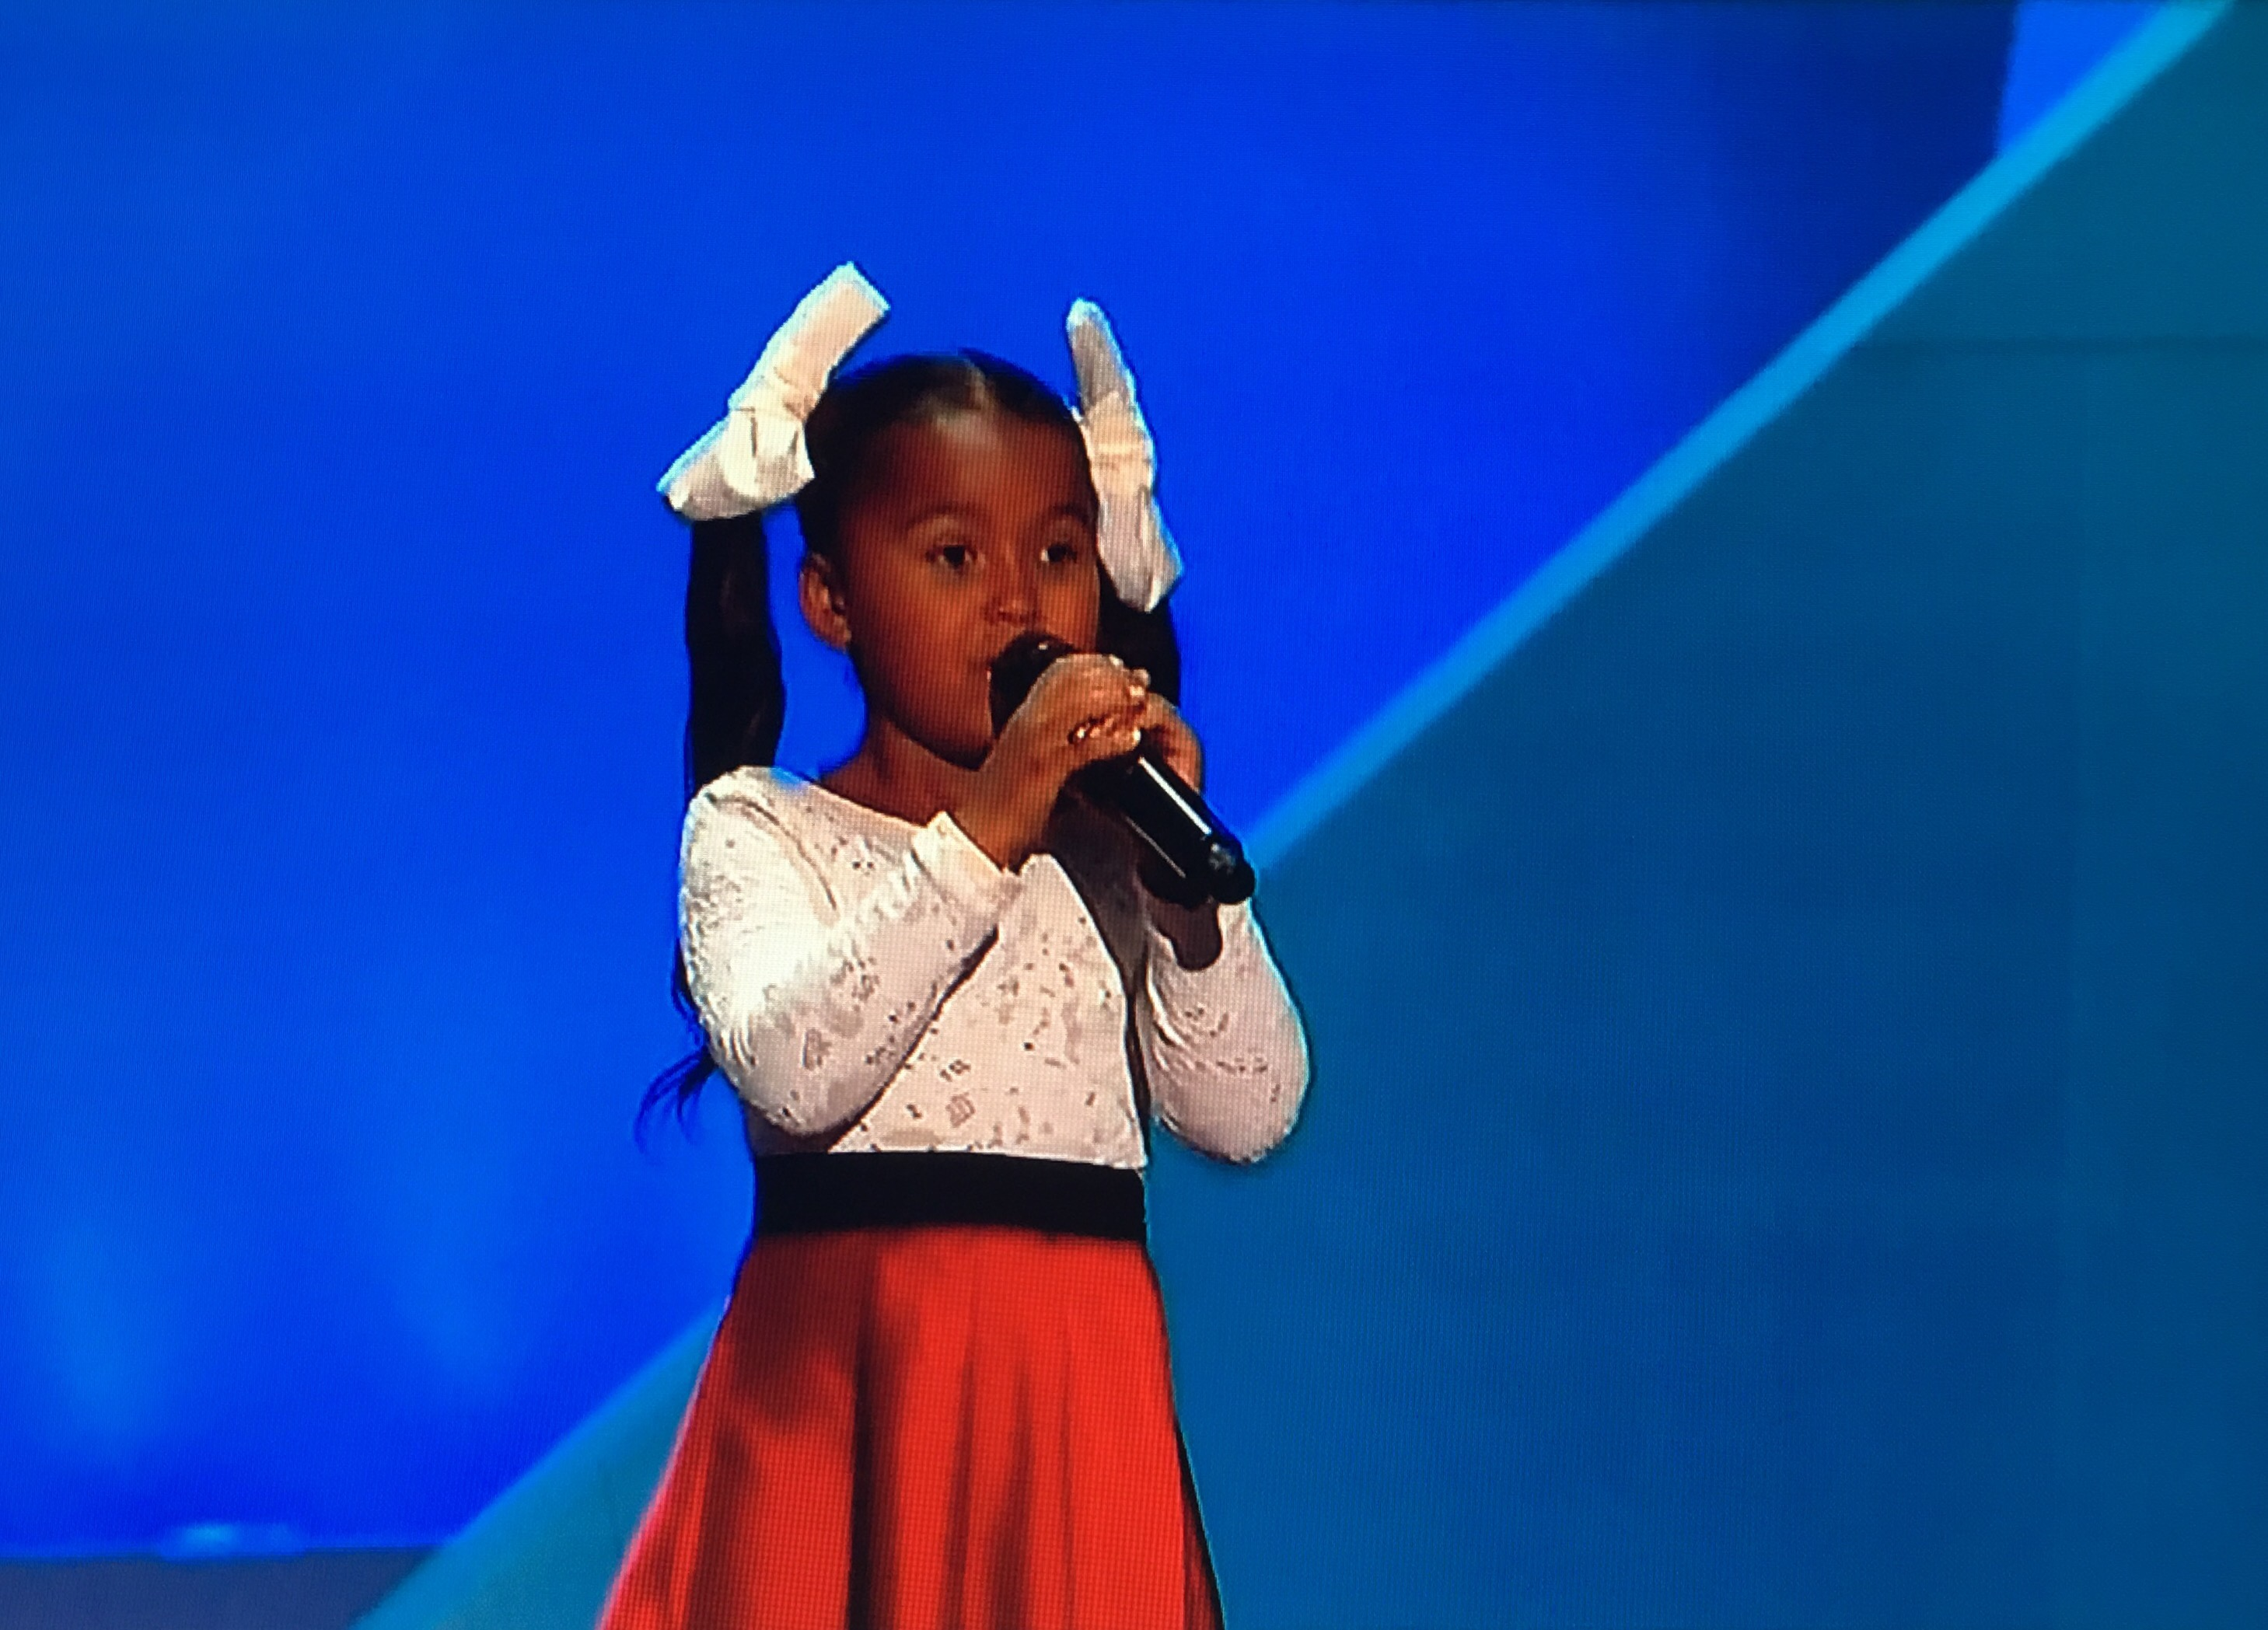 REPUBLICAN CONVENTION: A beautiful little girl named Heavenly Joy sang like an angel